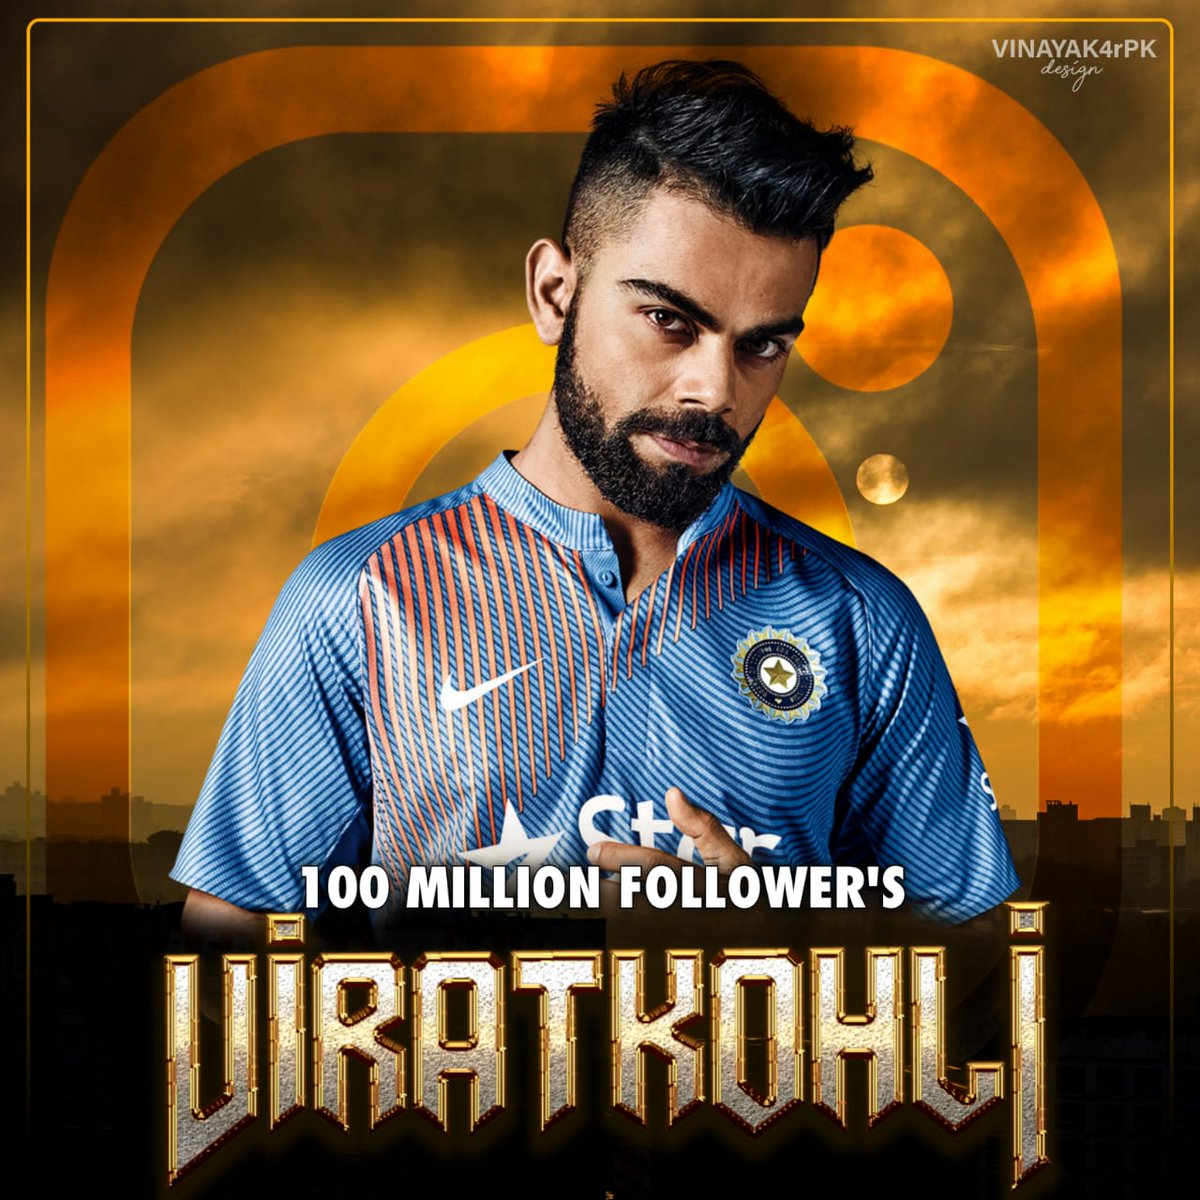 The only legend in india to reach 100 Million Followers.... Congratulations @imVkohli #100MillionViratiansOnInsta #ViratKohli #TeamIndia #100MillionViratiansOnInsta